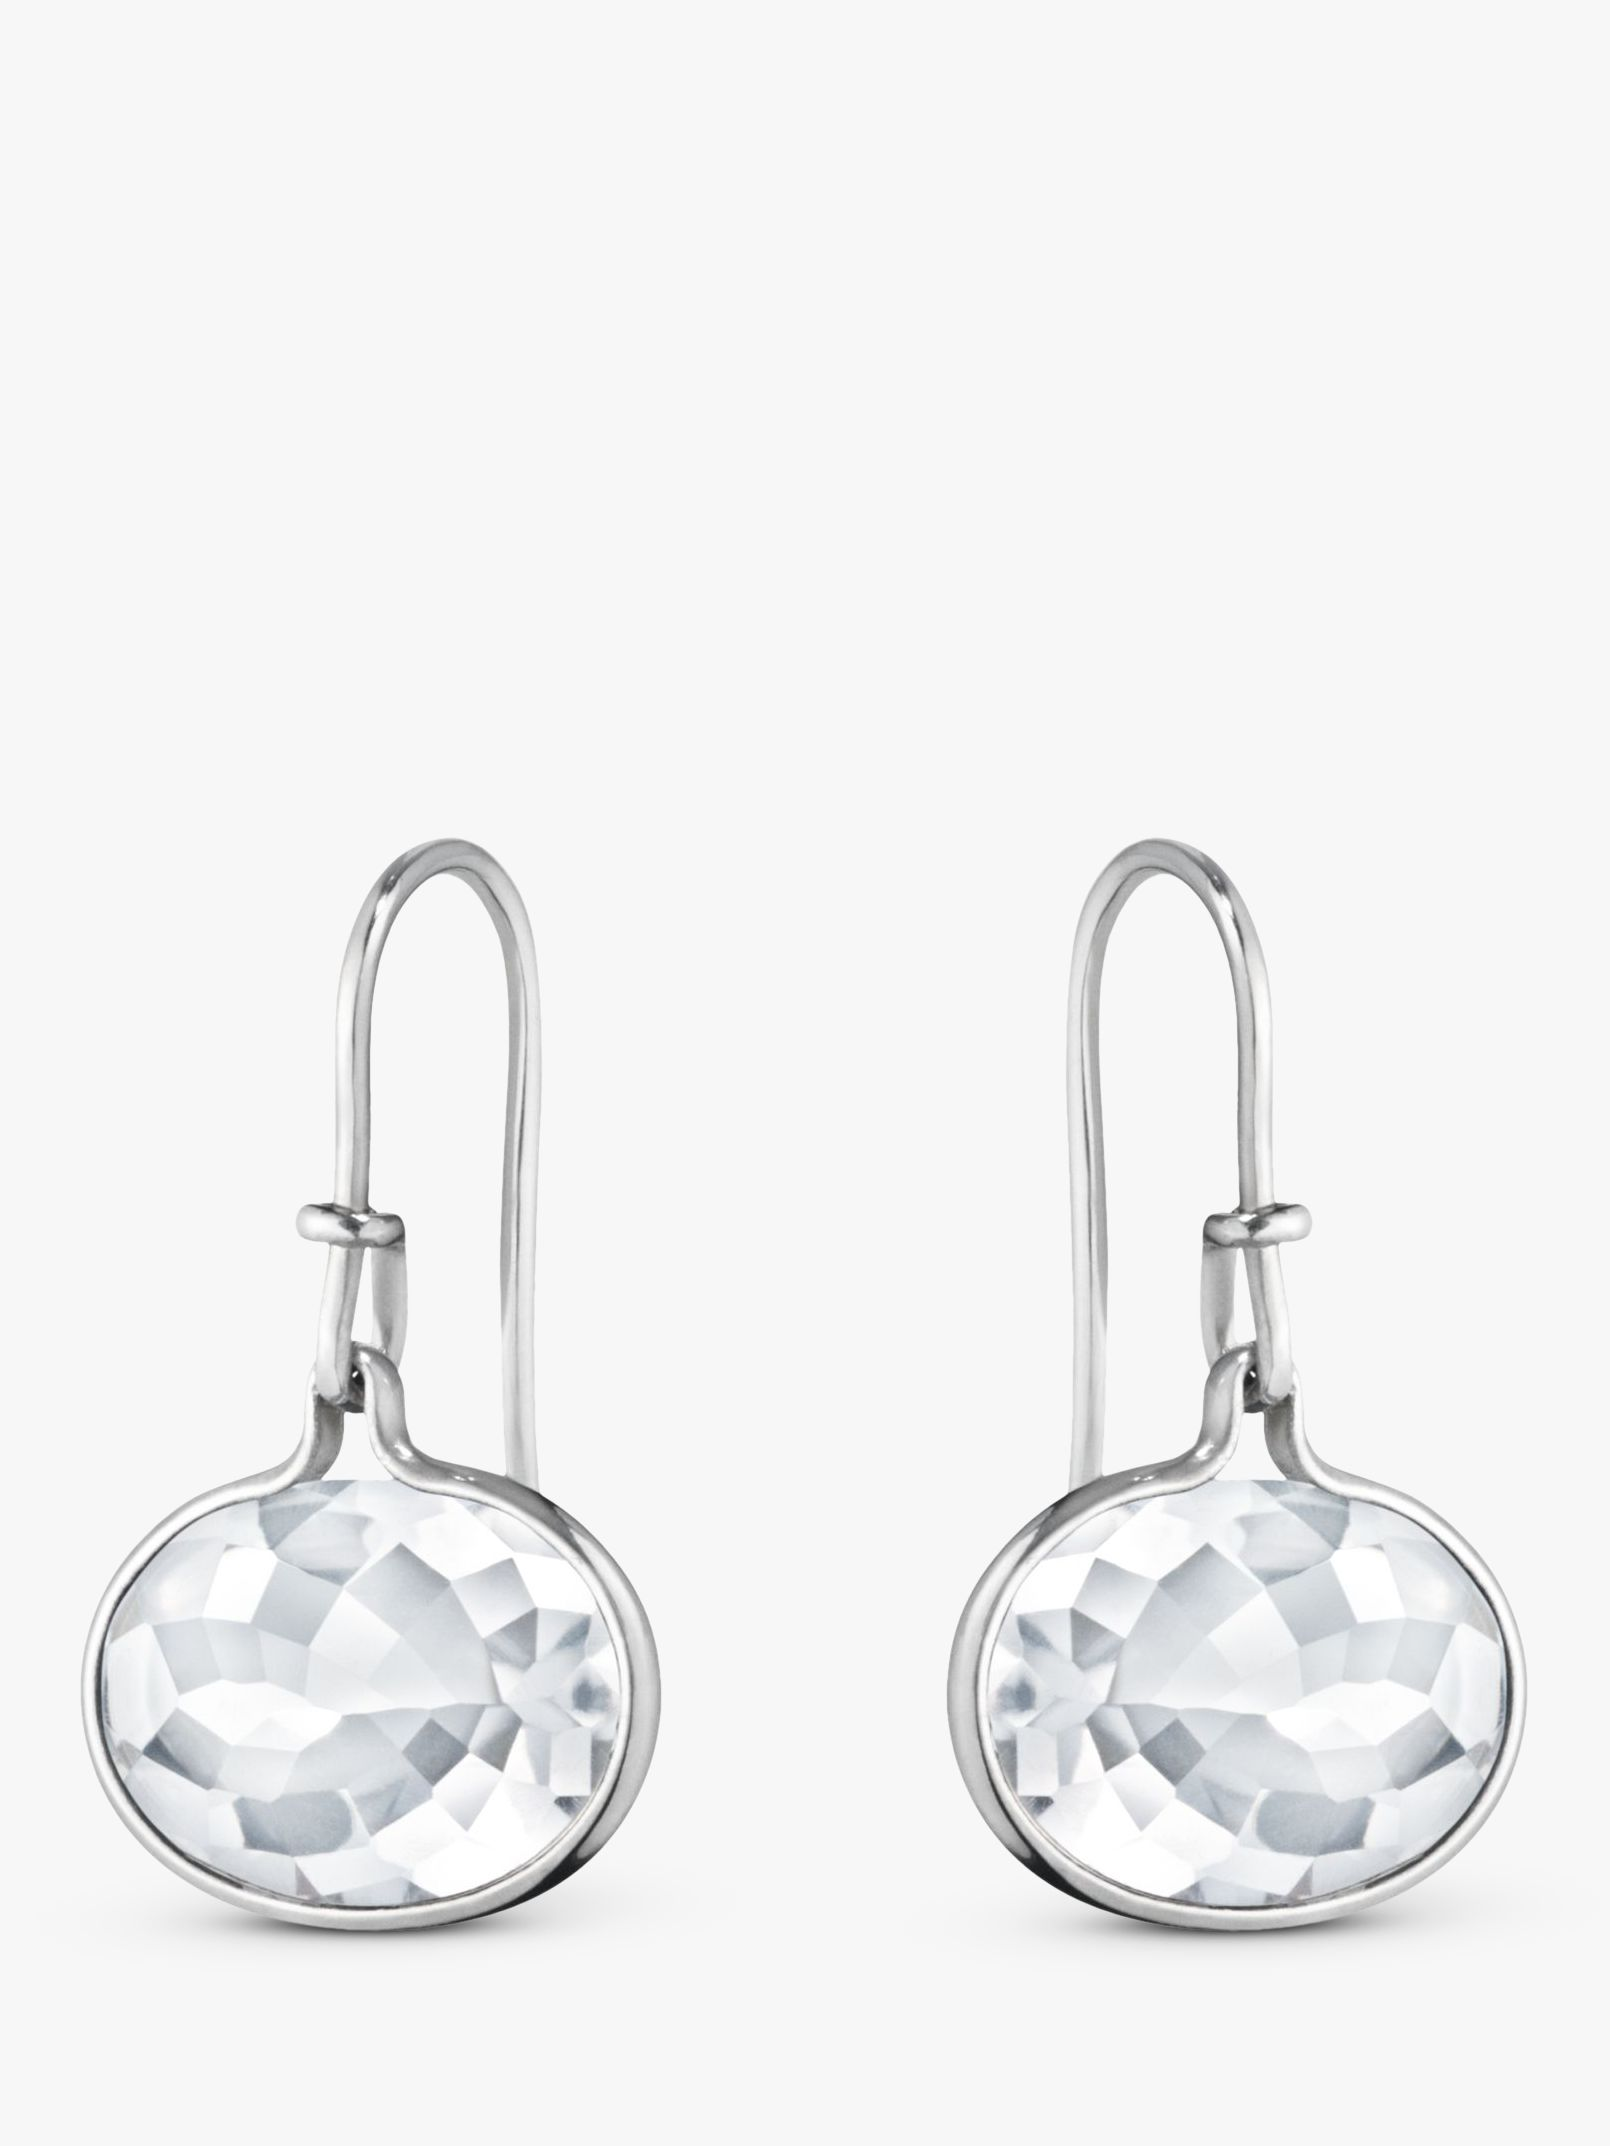 Georg Jensen Georg Jensen Savannah Oval Drop Earrings, Rock Crystal